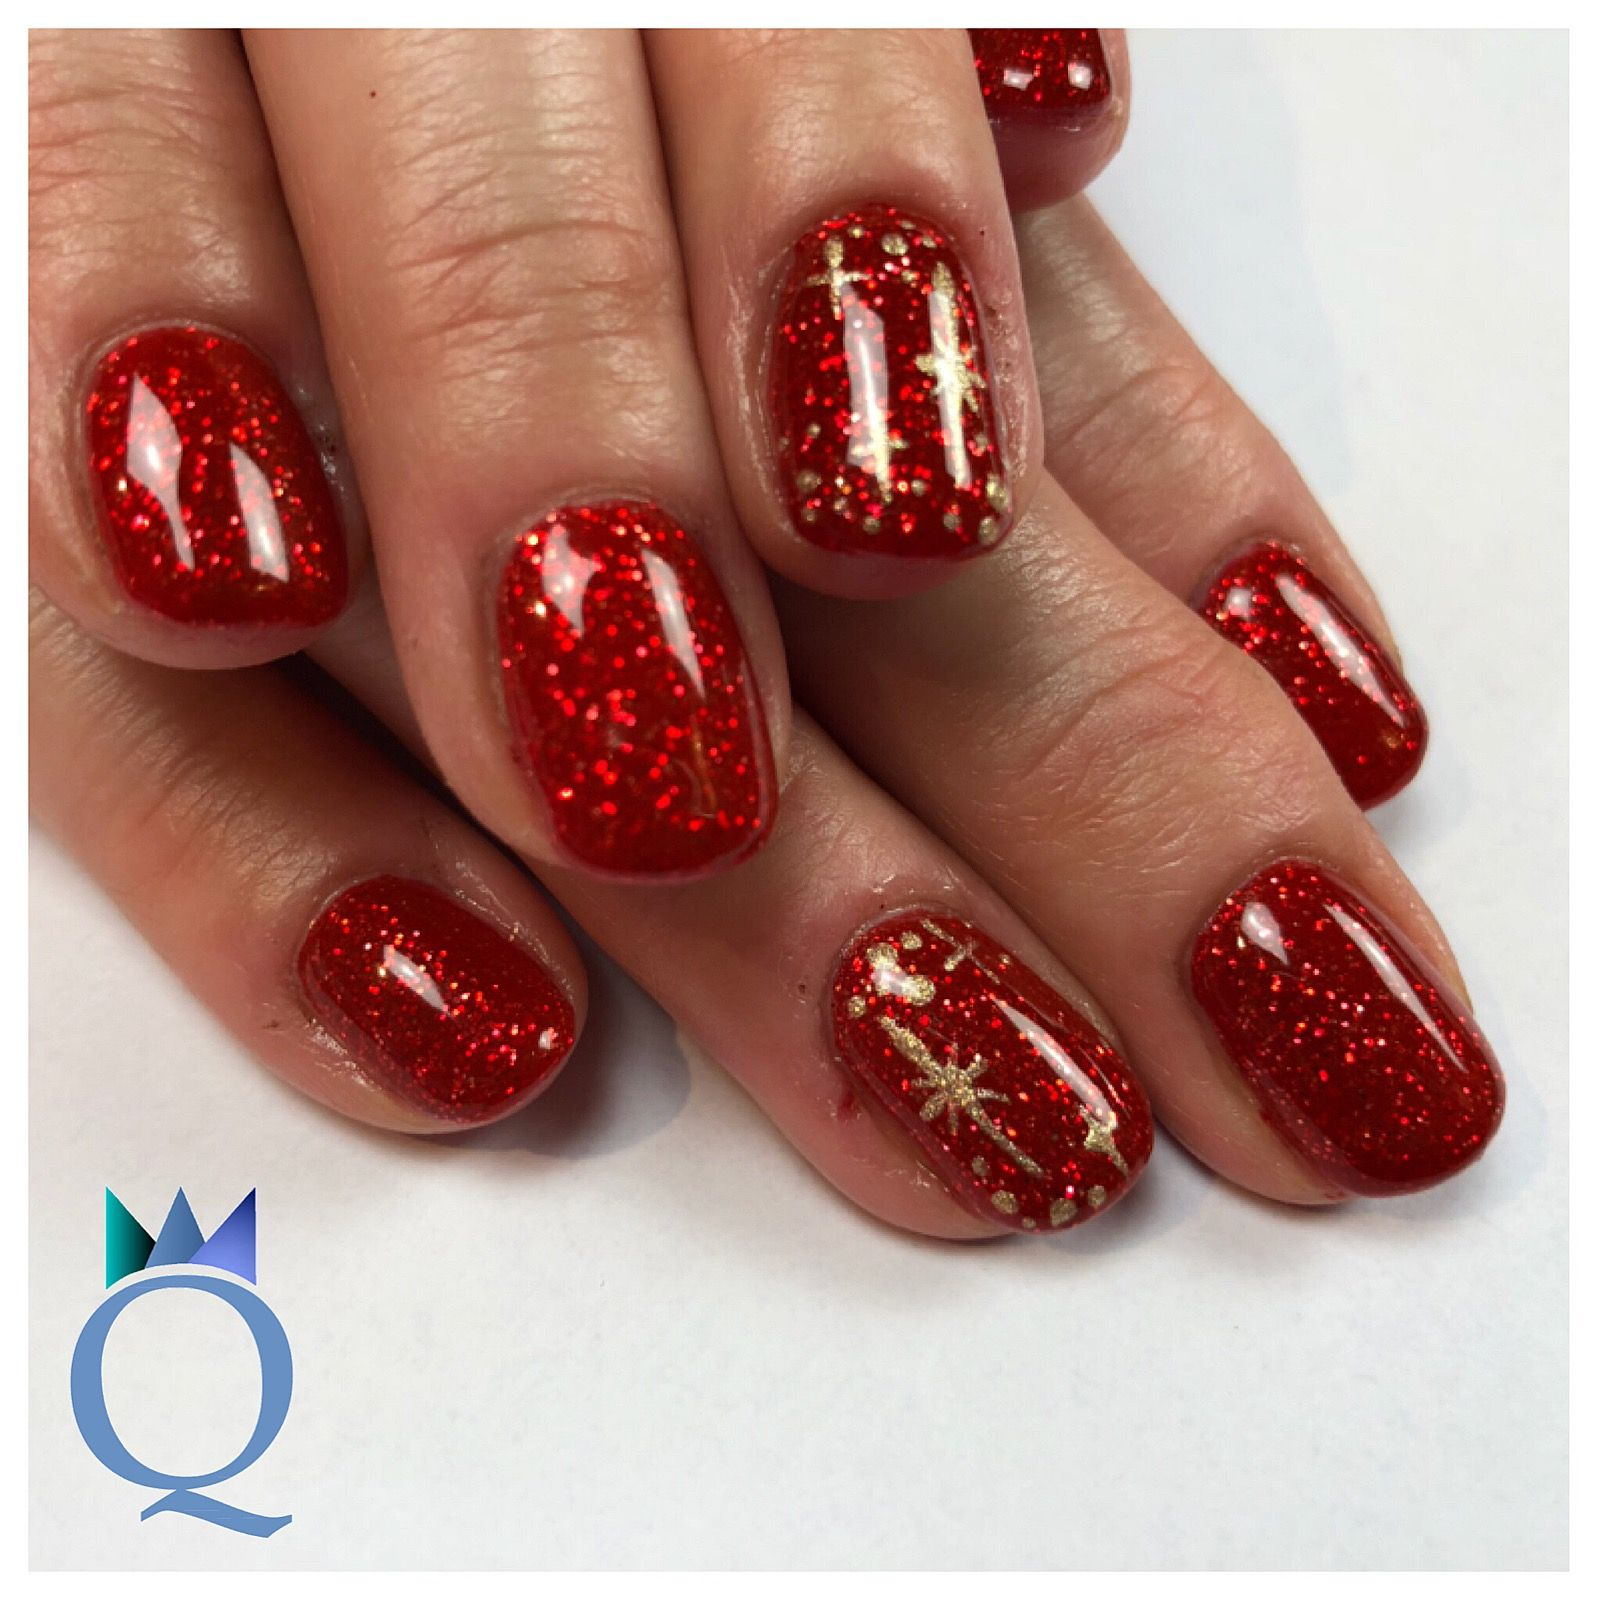 shortnails #gelnails #nails #red #glitter #christmasnails #gold ...